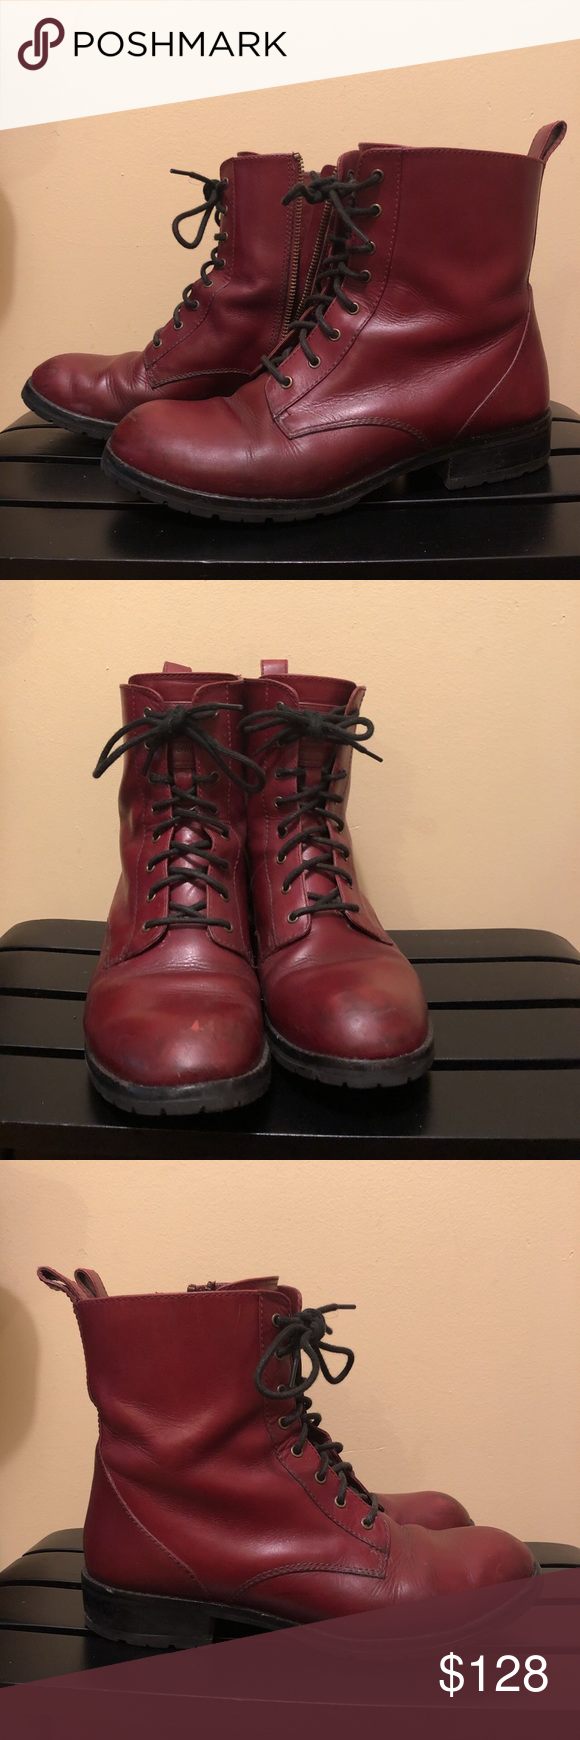 red leather work boots